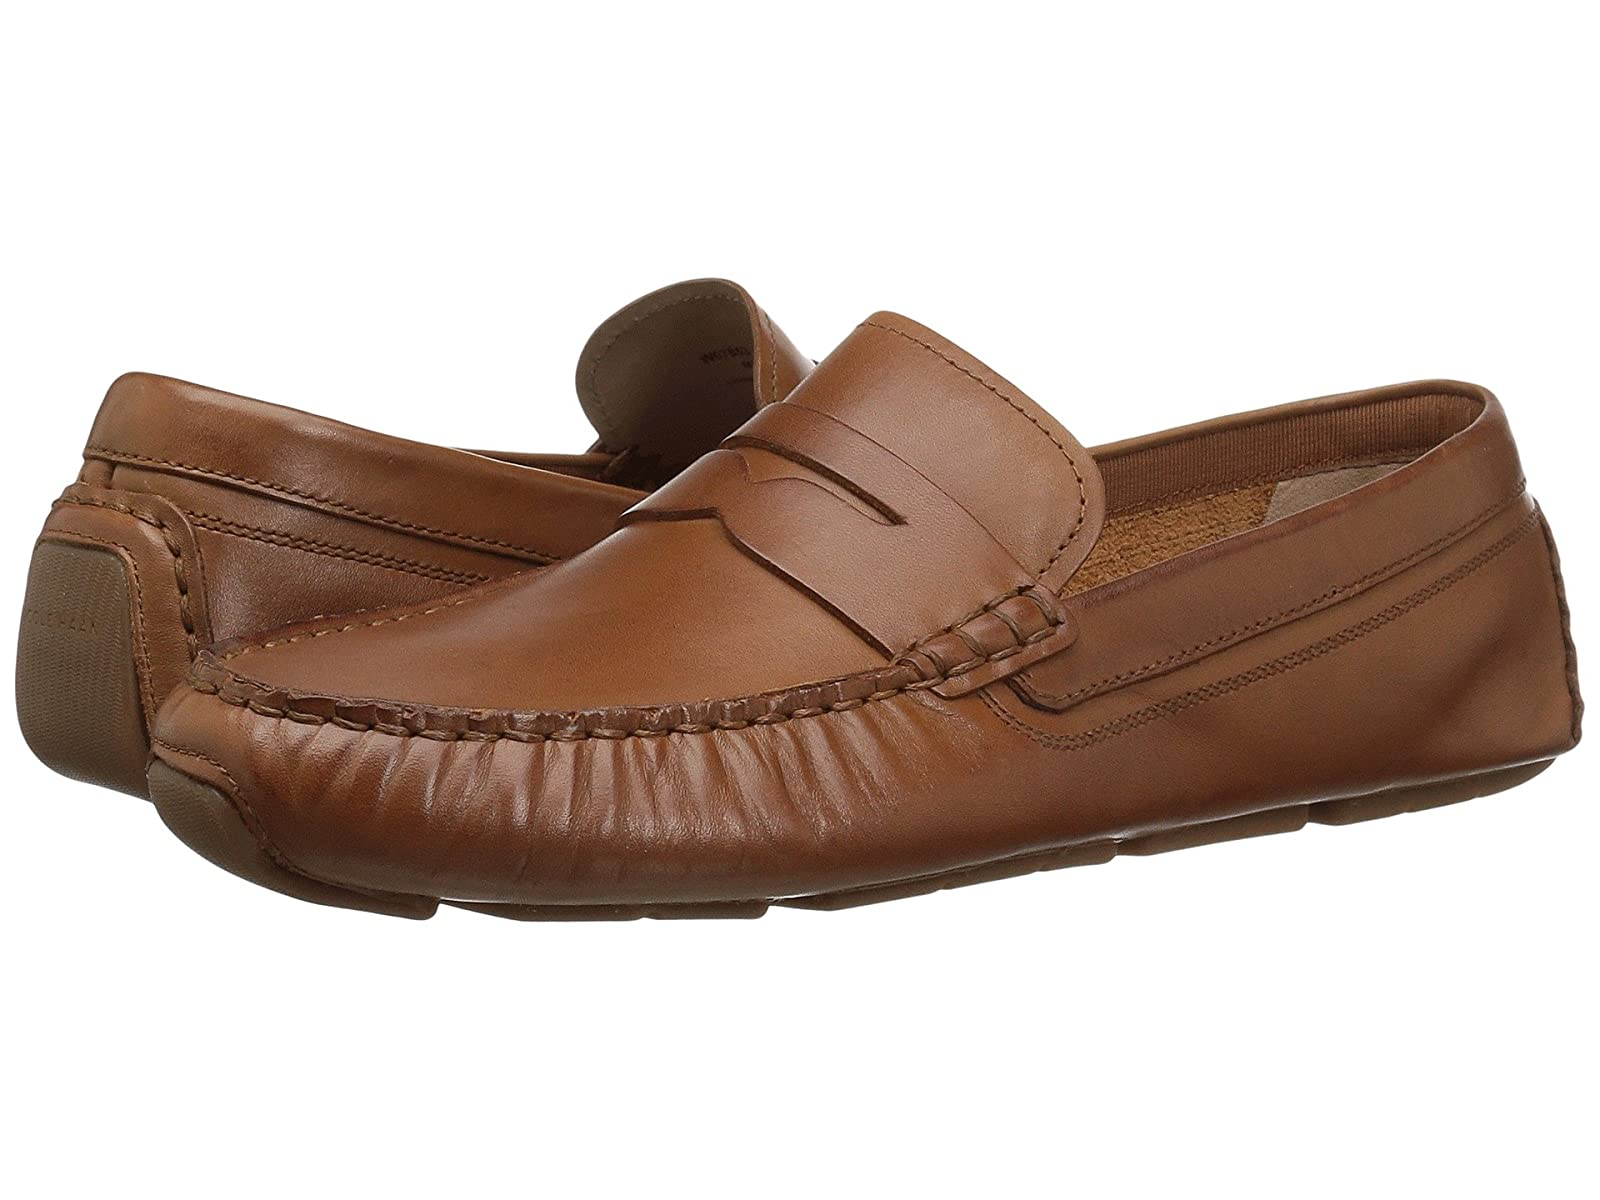 Cole Haan Rodeo Penny DriverCheap and distinctive eye-catching shoes